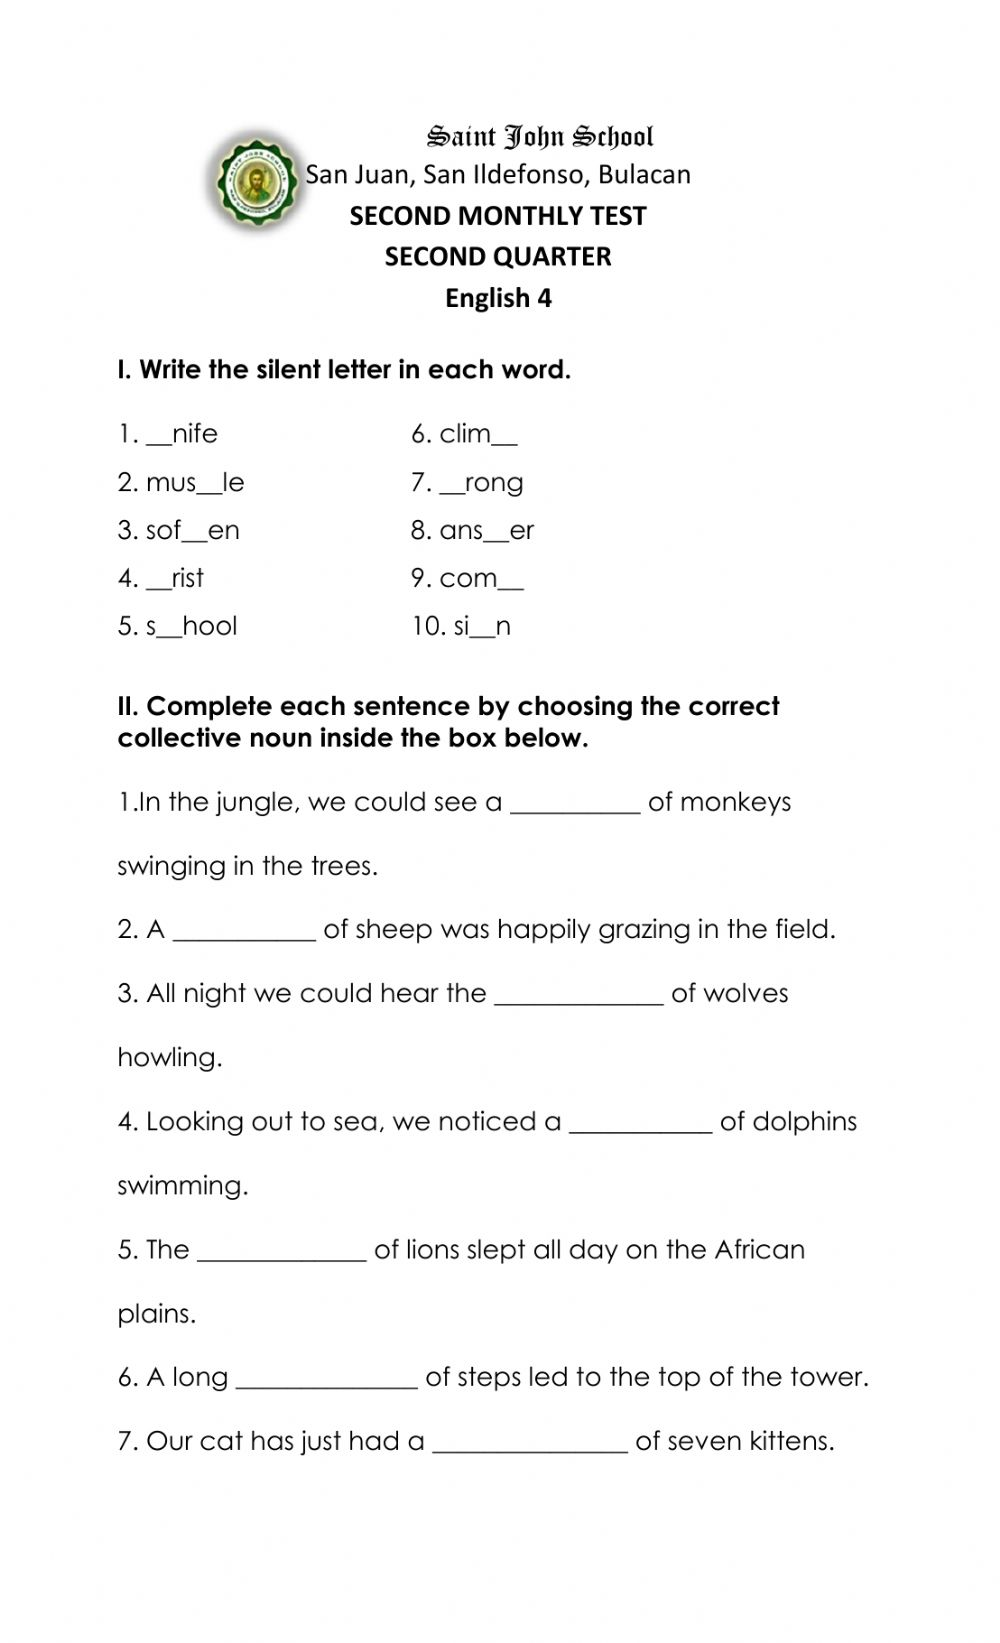 medium resolution of English 2nd Monthly Test worksheet